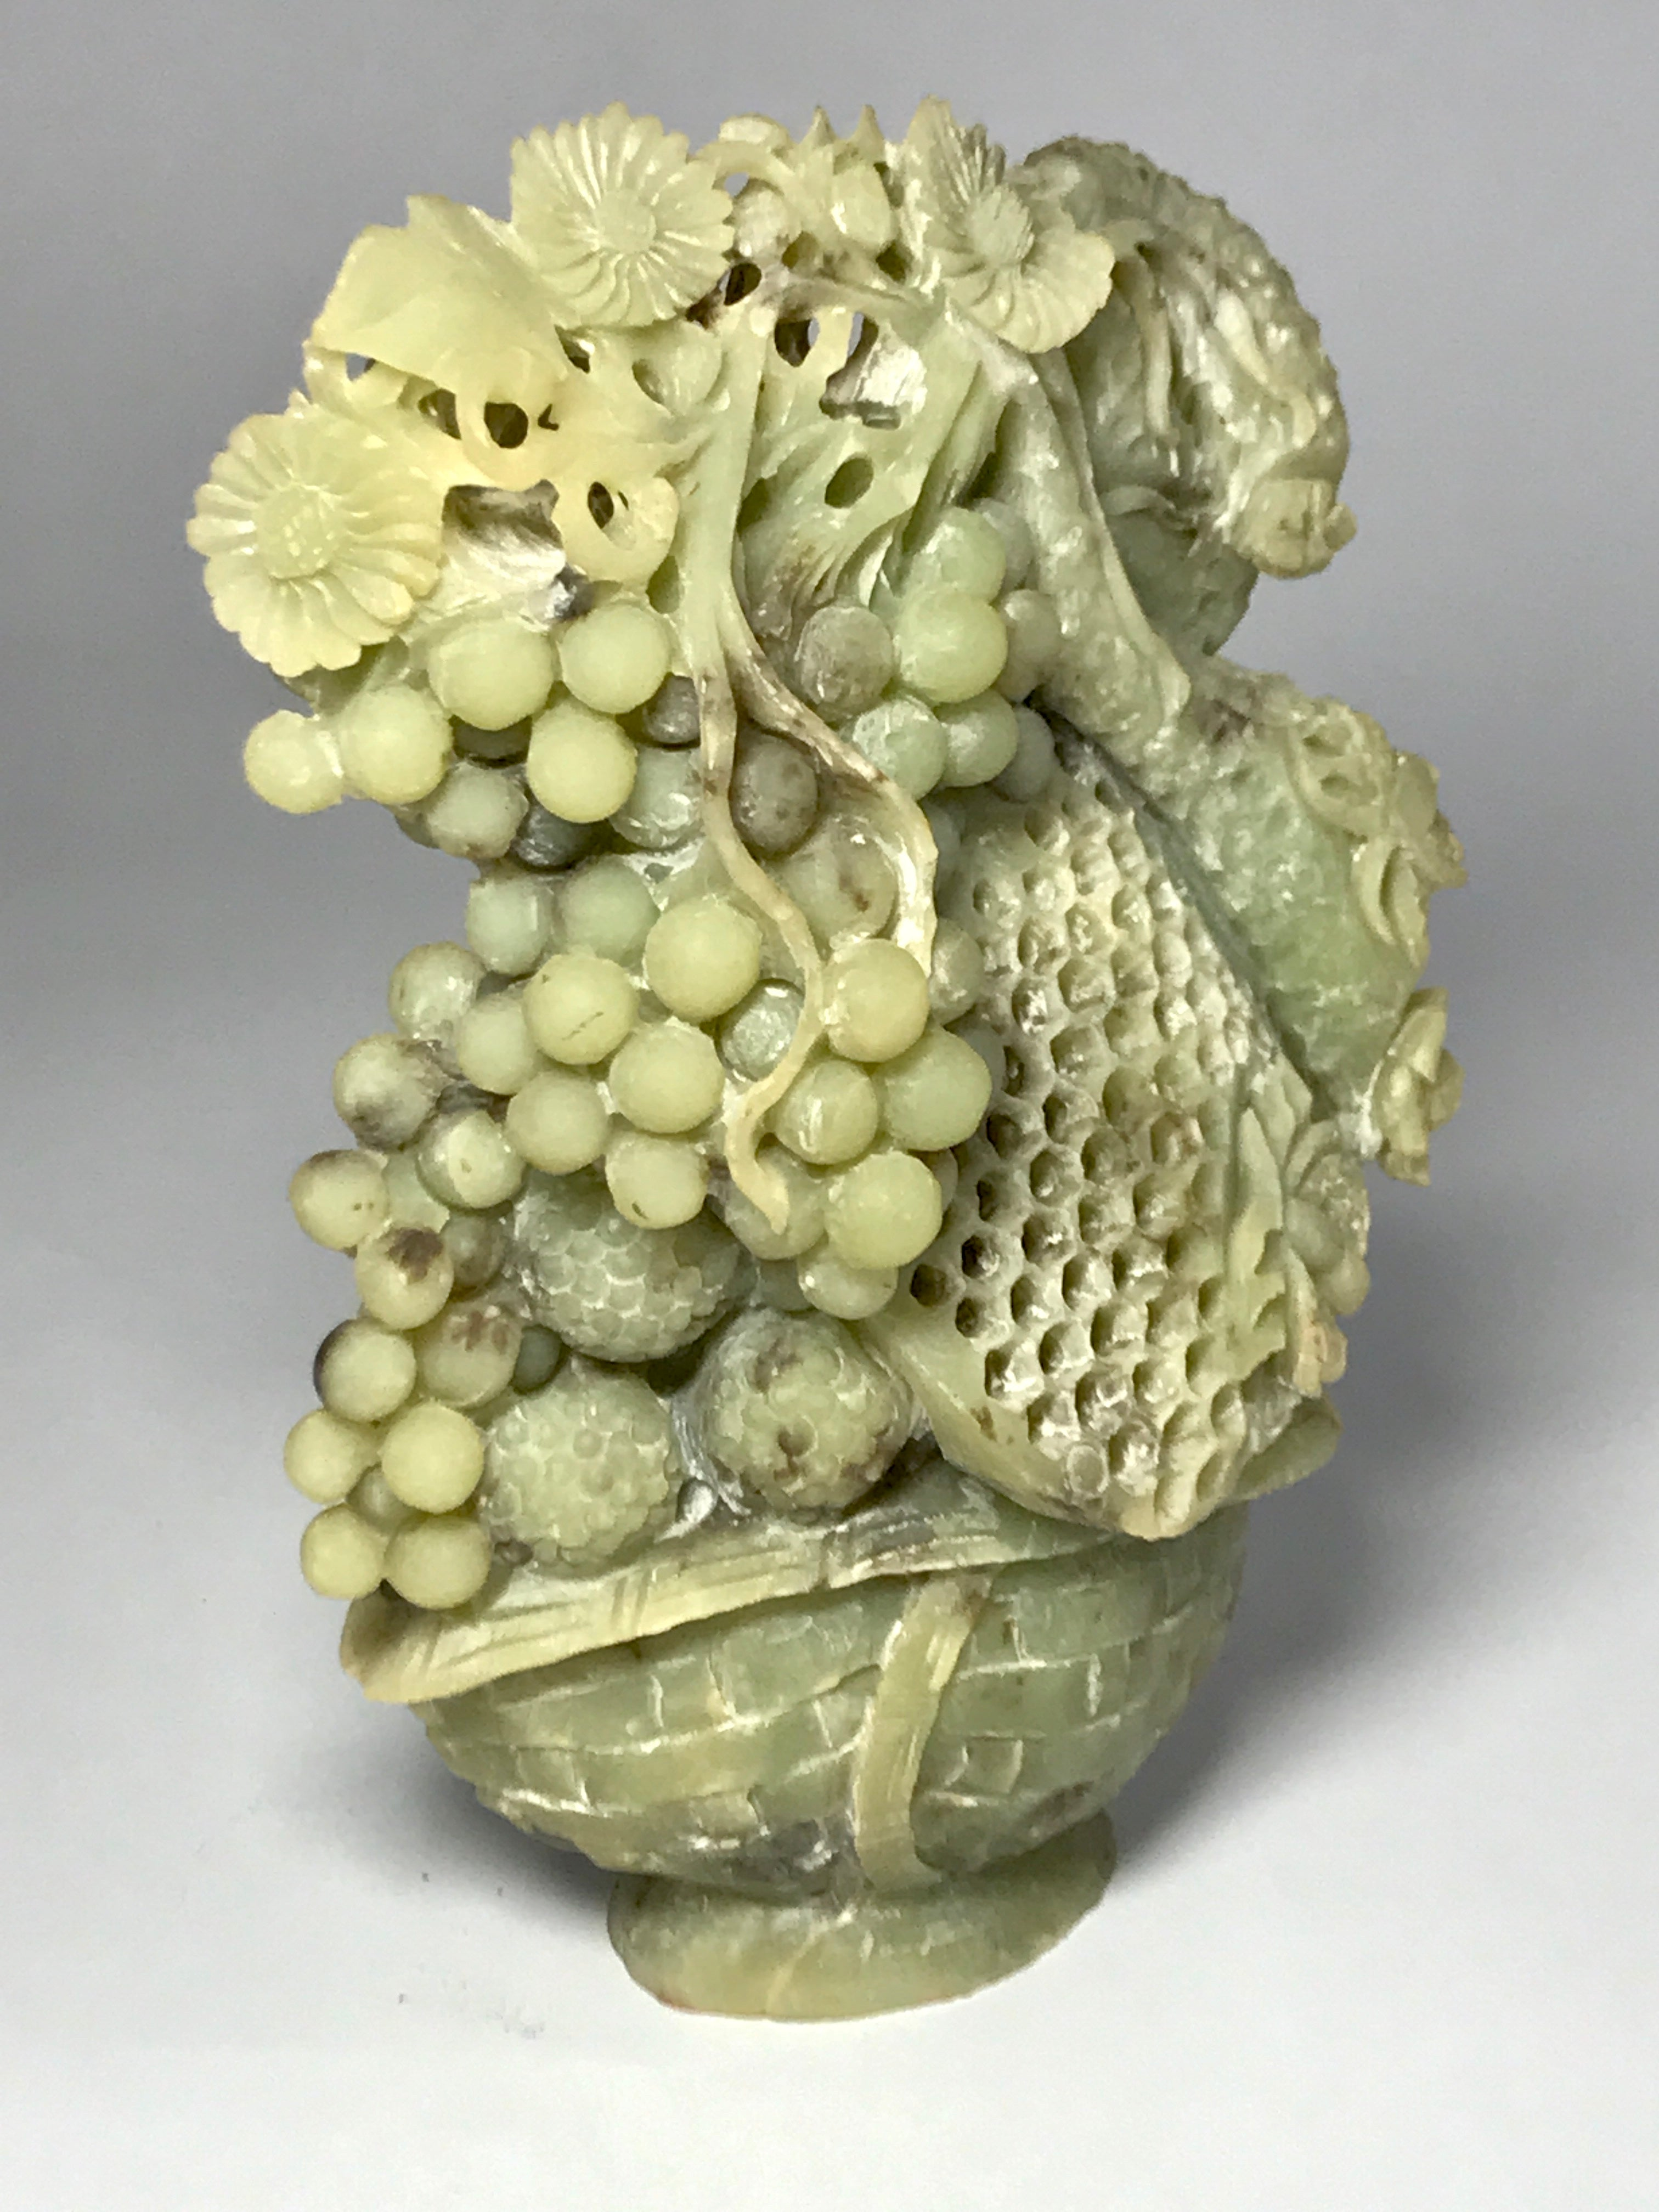 fruit basket carved from jade